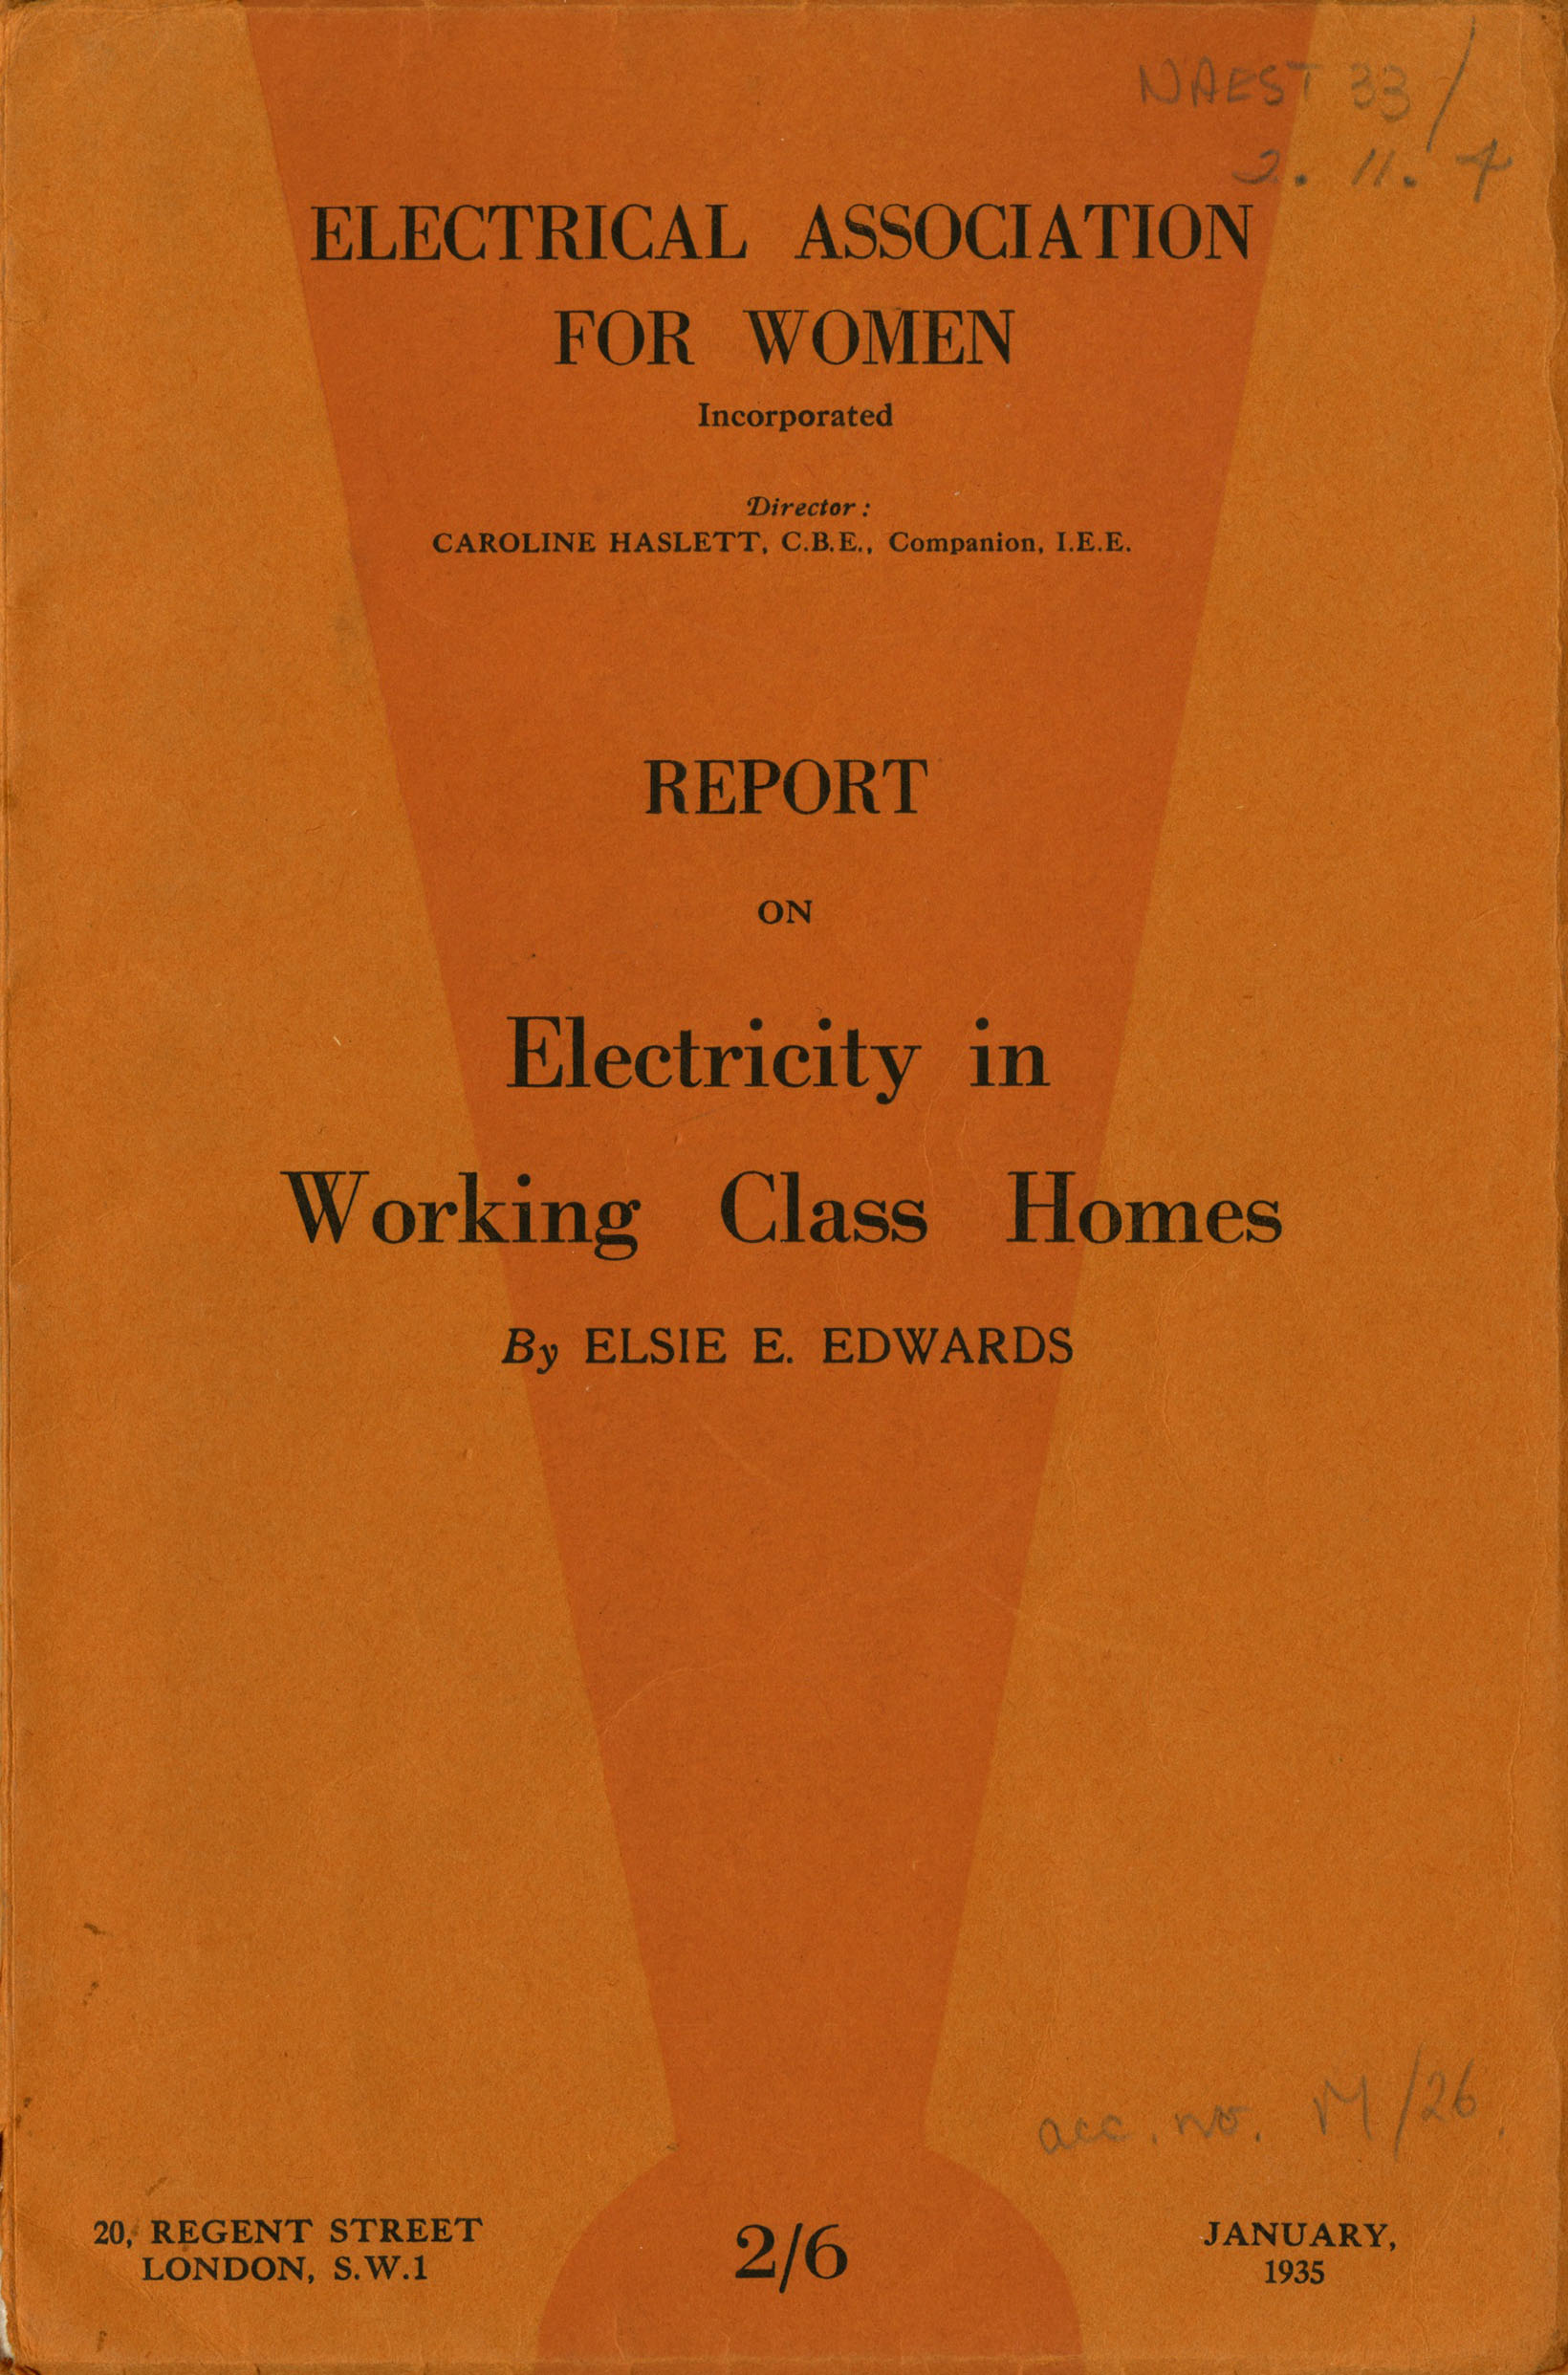 EAW 'Report on electricity in working class homes', by Elsie E Edwards 1935 IET Archives ref NAEST 33/02/11/04.